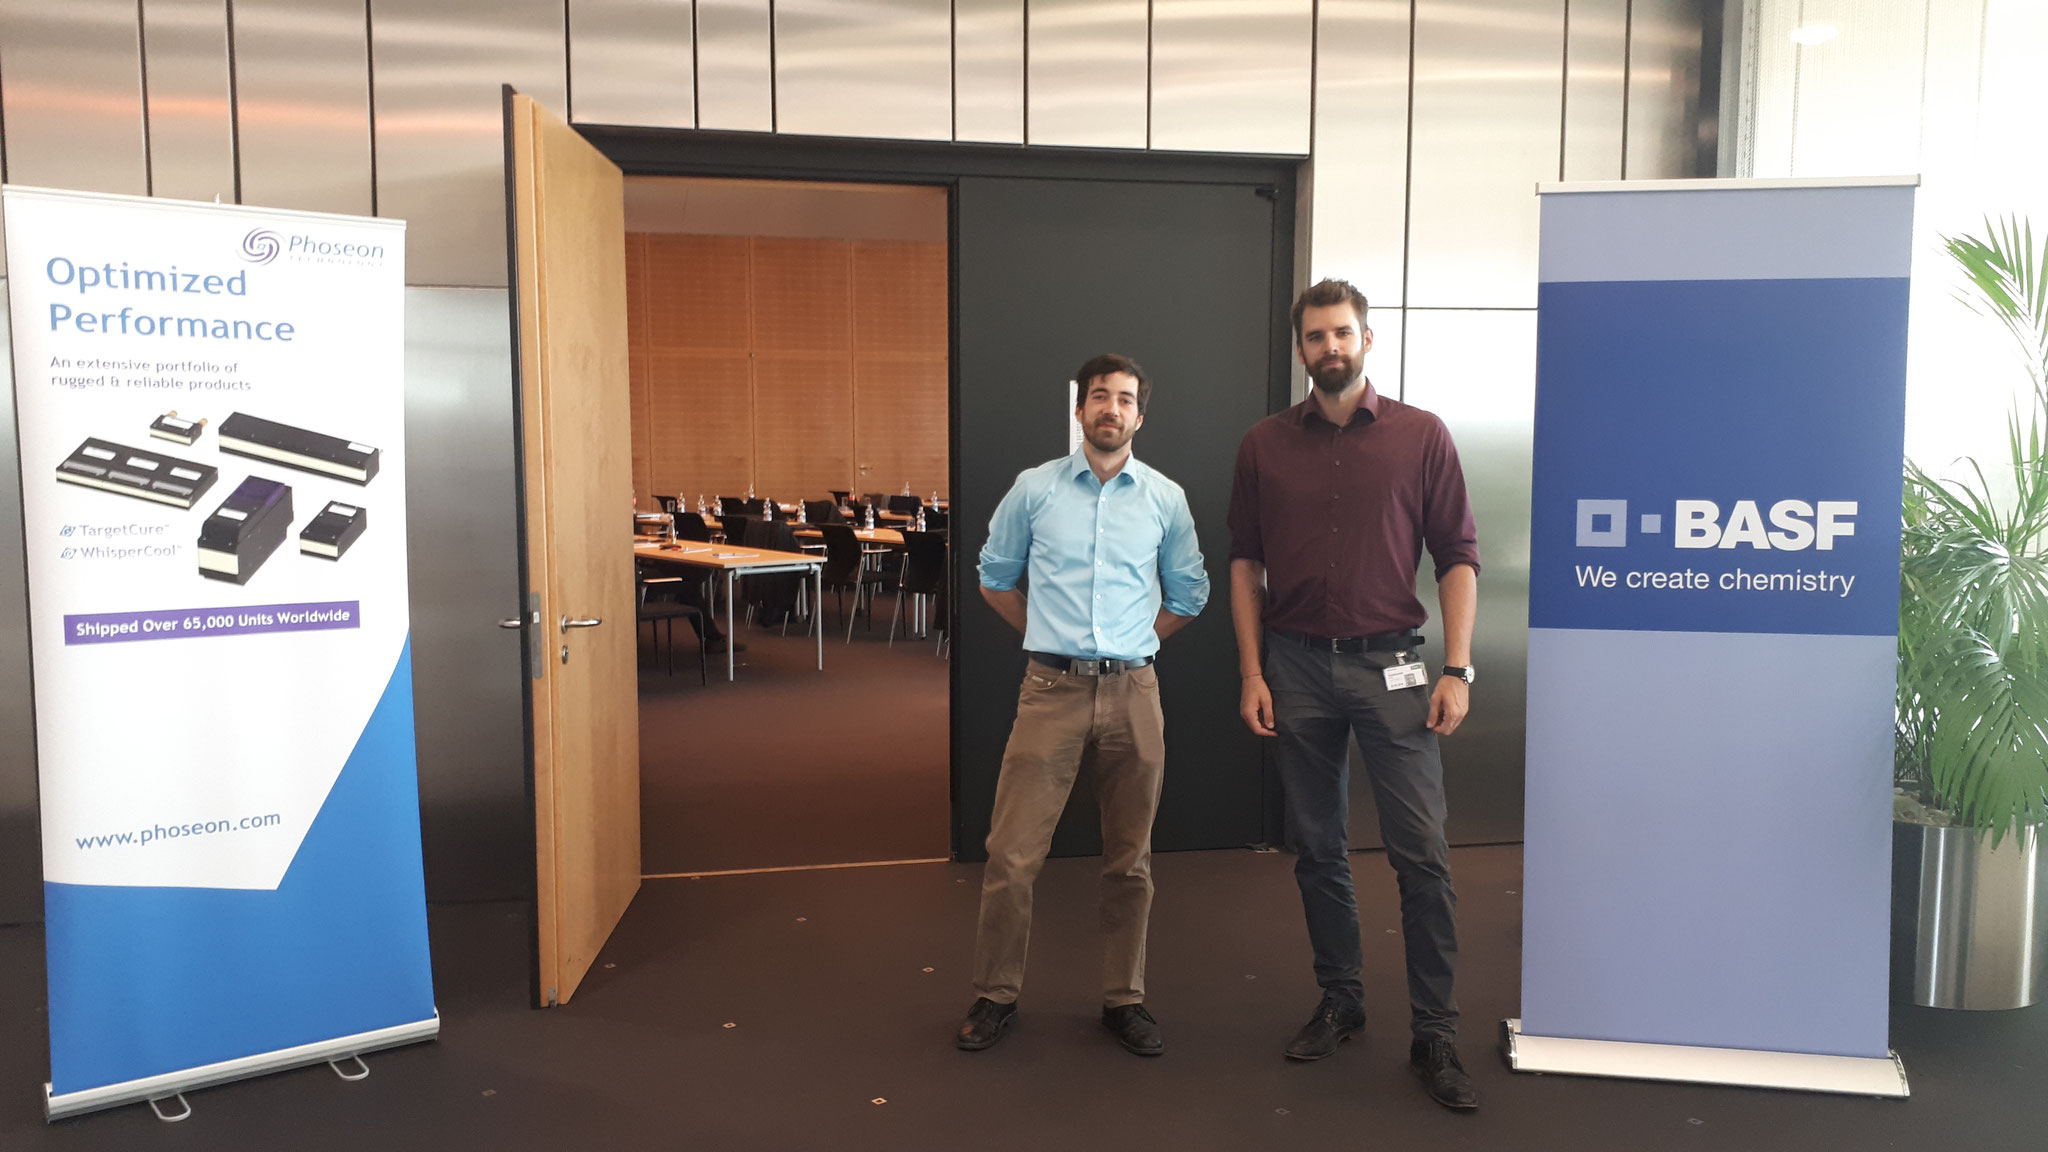 TeBeS Team during BASF Led technology conference in Ludwigshafen, 2018